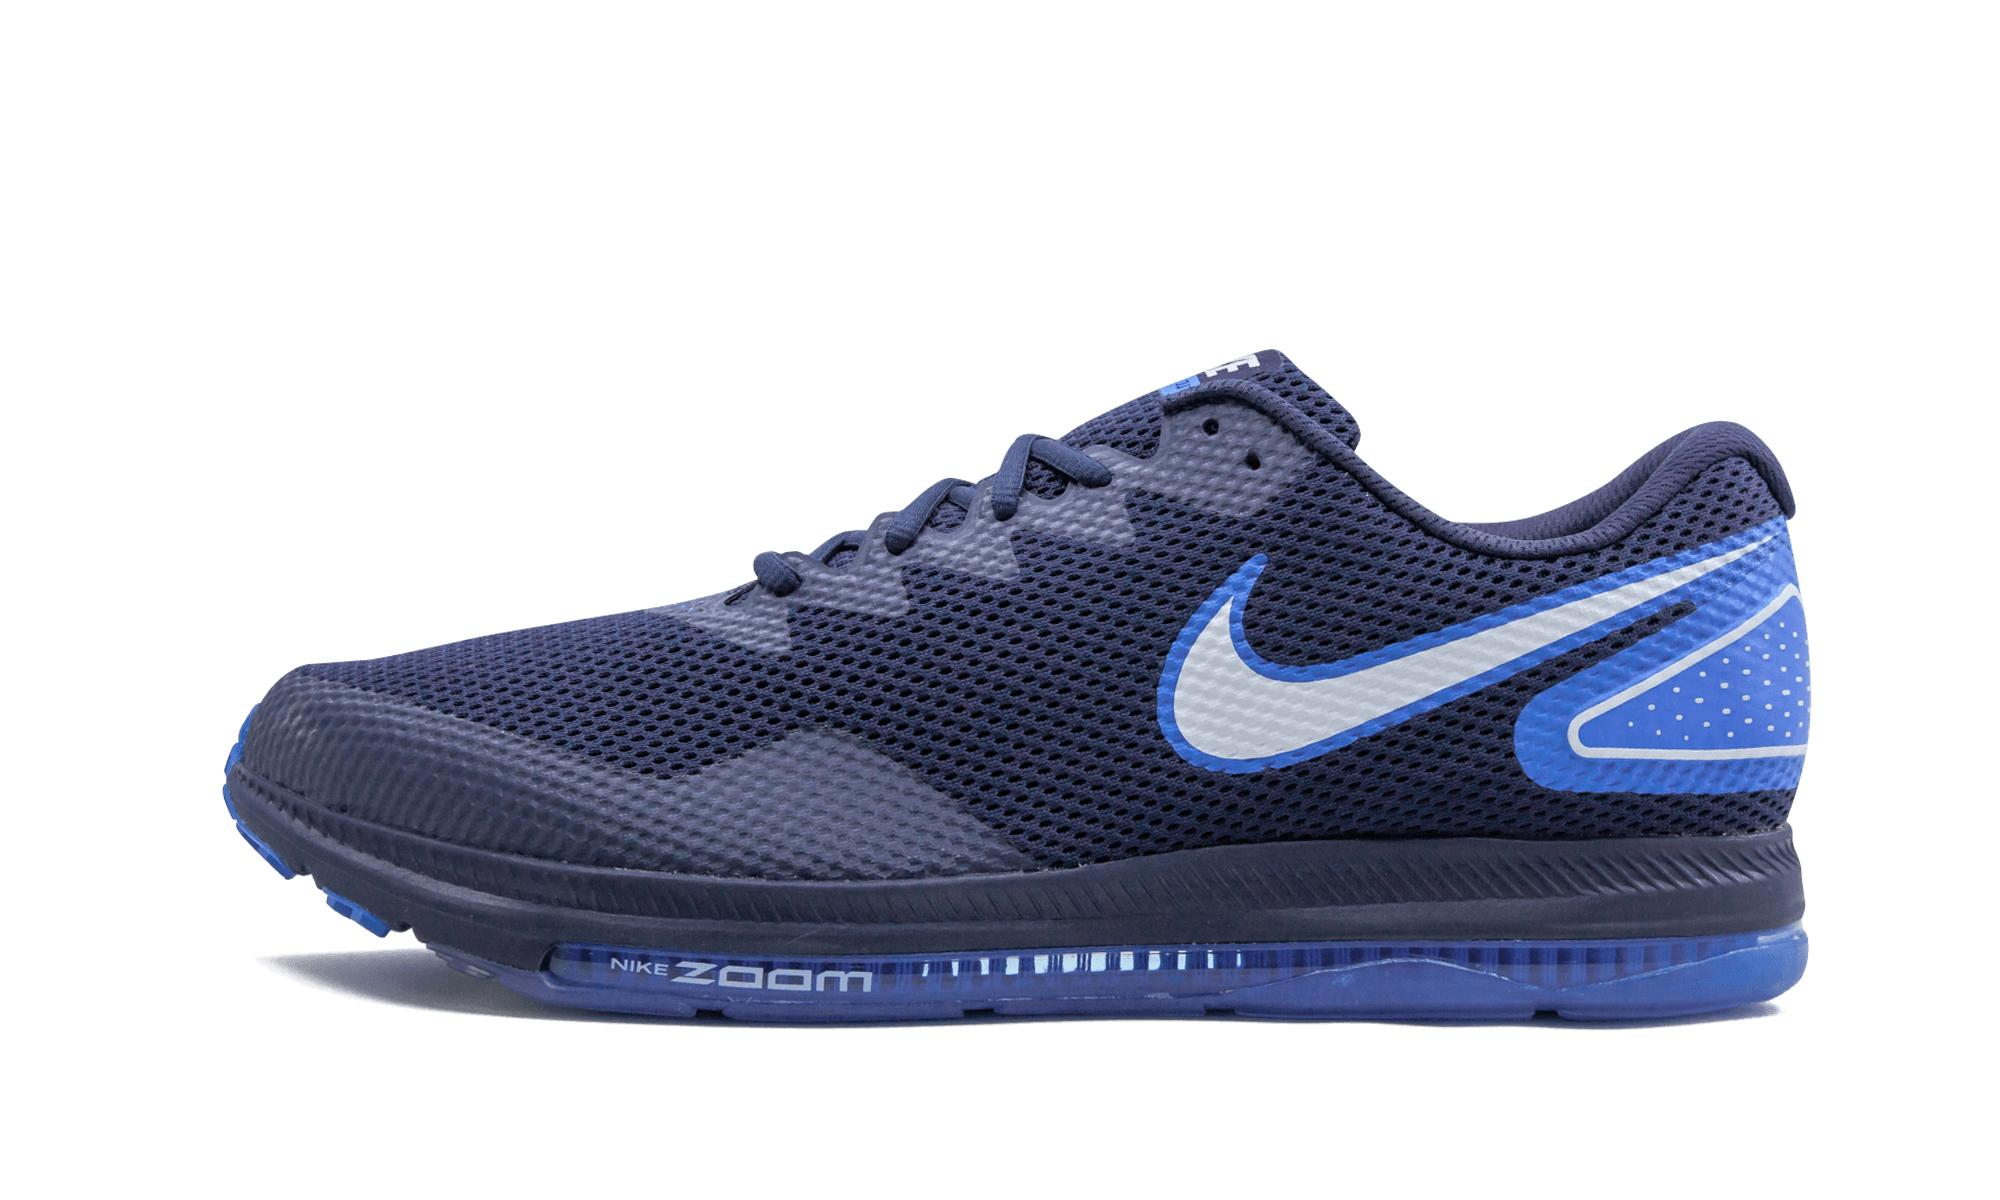 Nike Zoom All Out Low 2 Shoes - Size 15